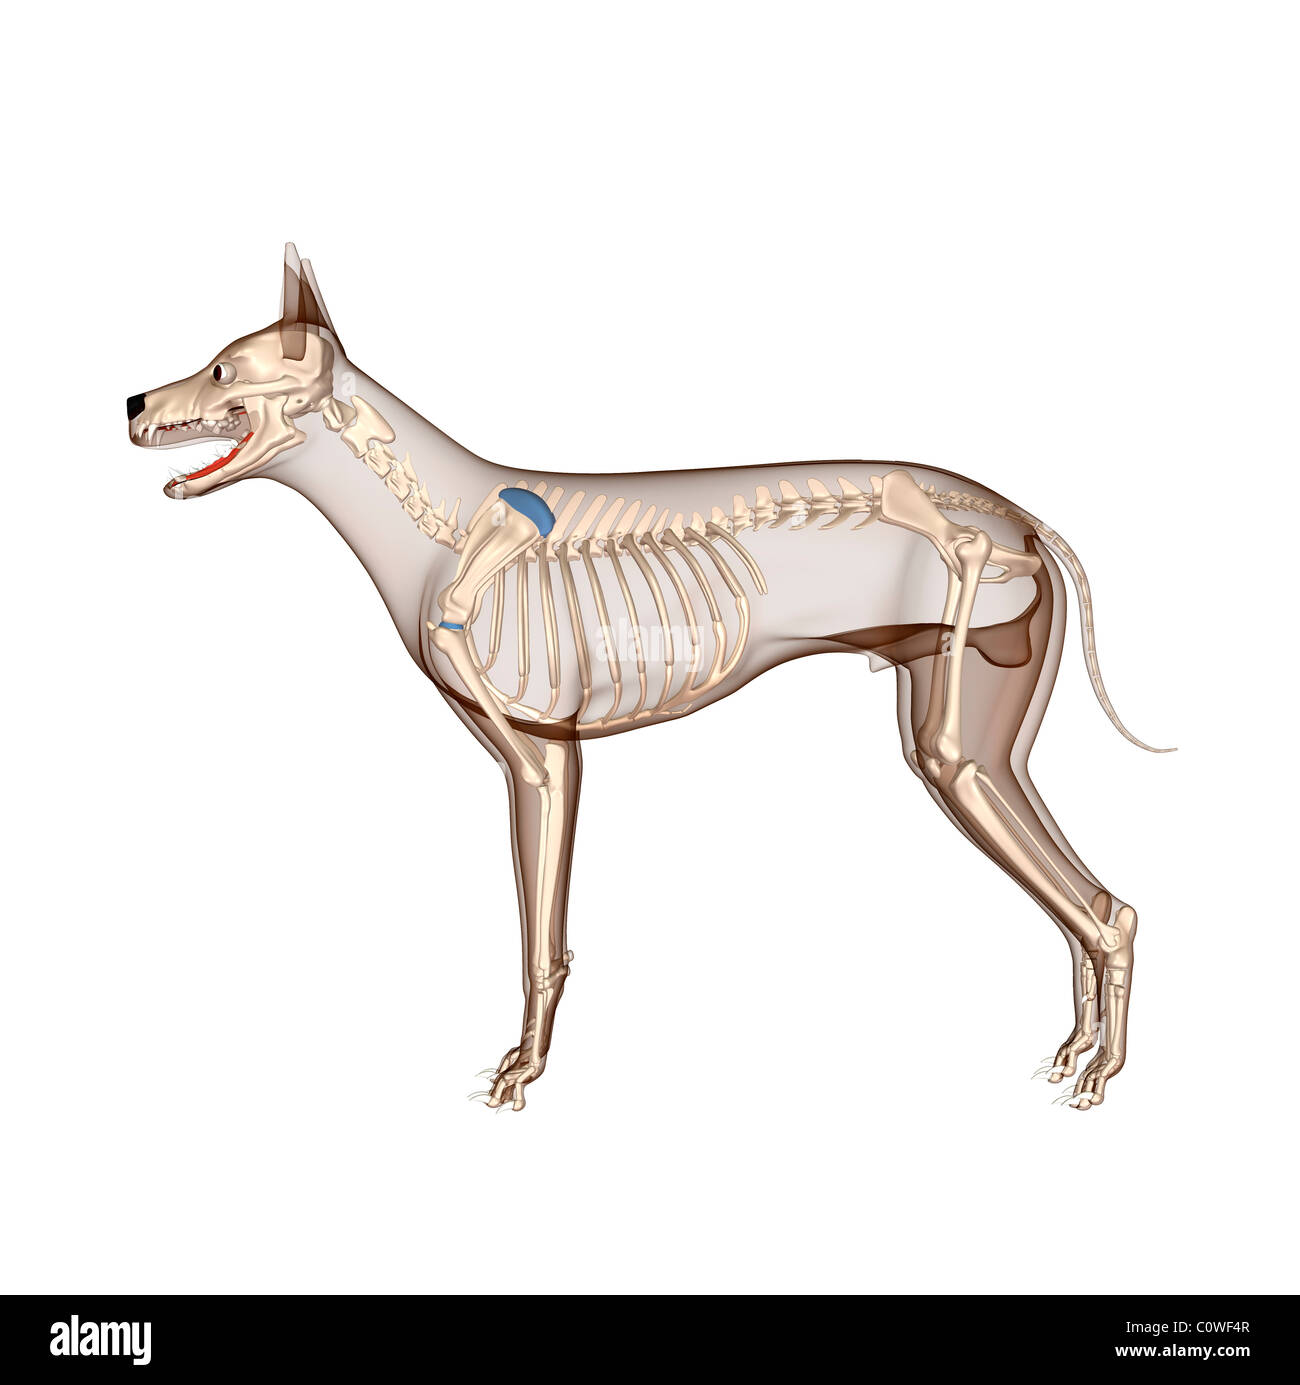 Dog Skeleton Stockfotos & Dog Skeleton Bilder - Alamy